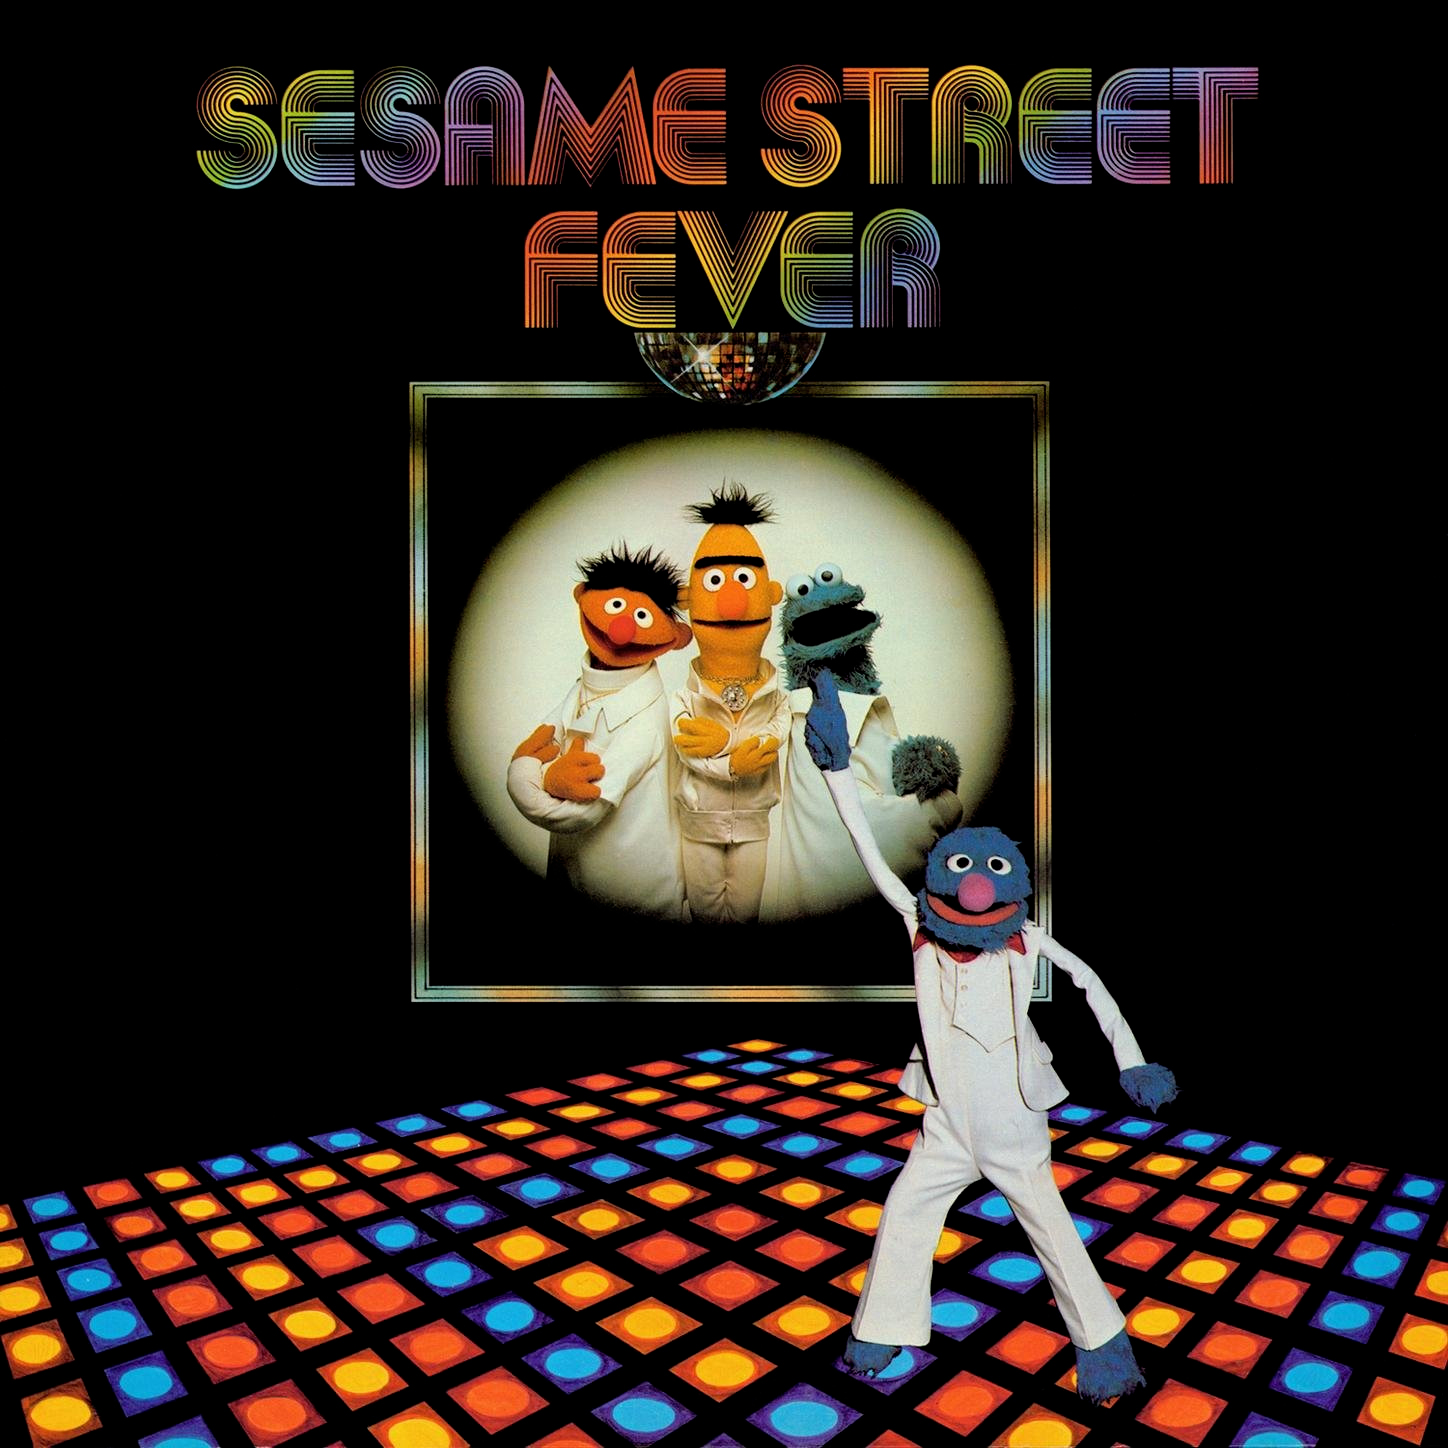 Sesame Street Fever (album) | Muppet Wiki | Fandom powered ...